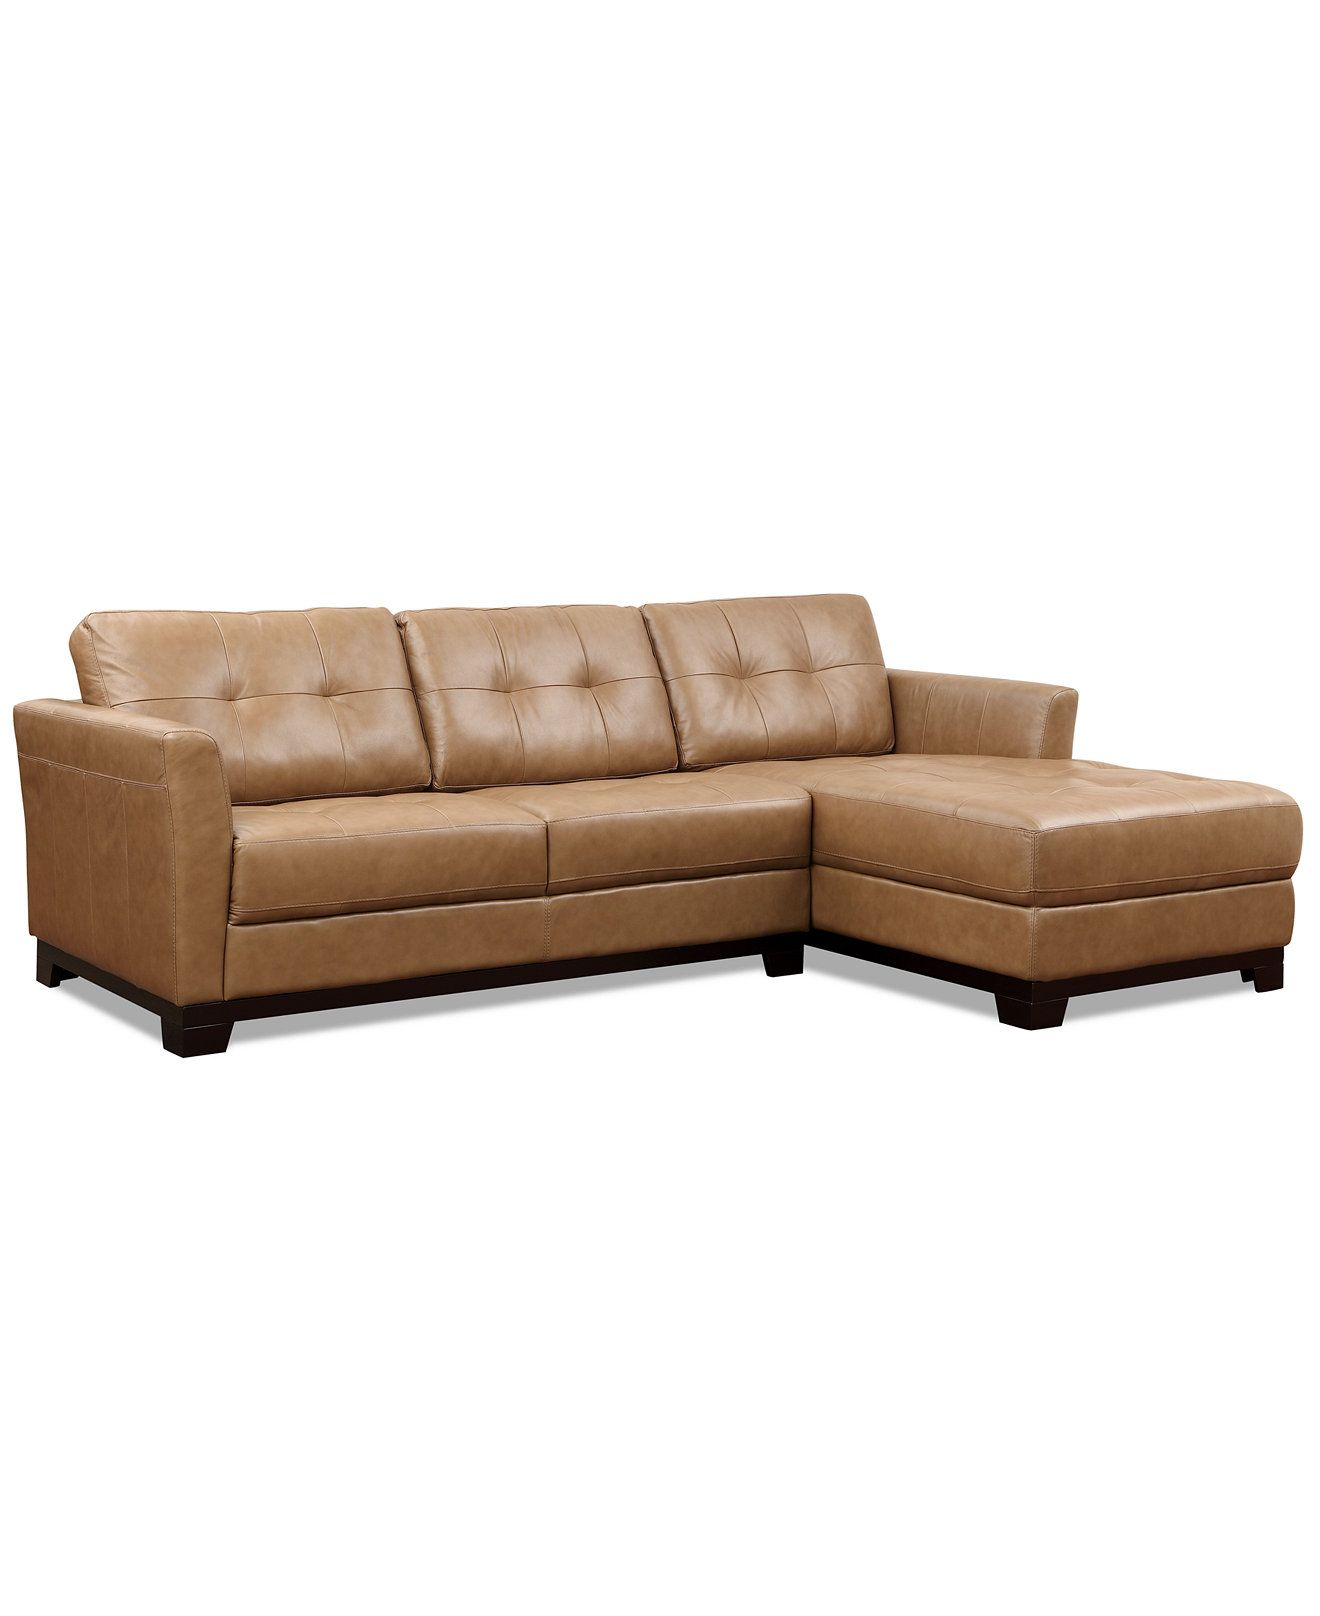 Martino Leather Chaise Sectional Sofa 2 Piece Apartment And Bobkona Barrie Microsuede Loveseat Set Couches Sofas Furniture Macy S